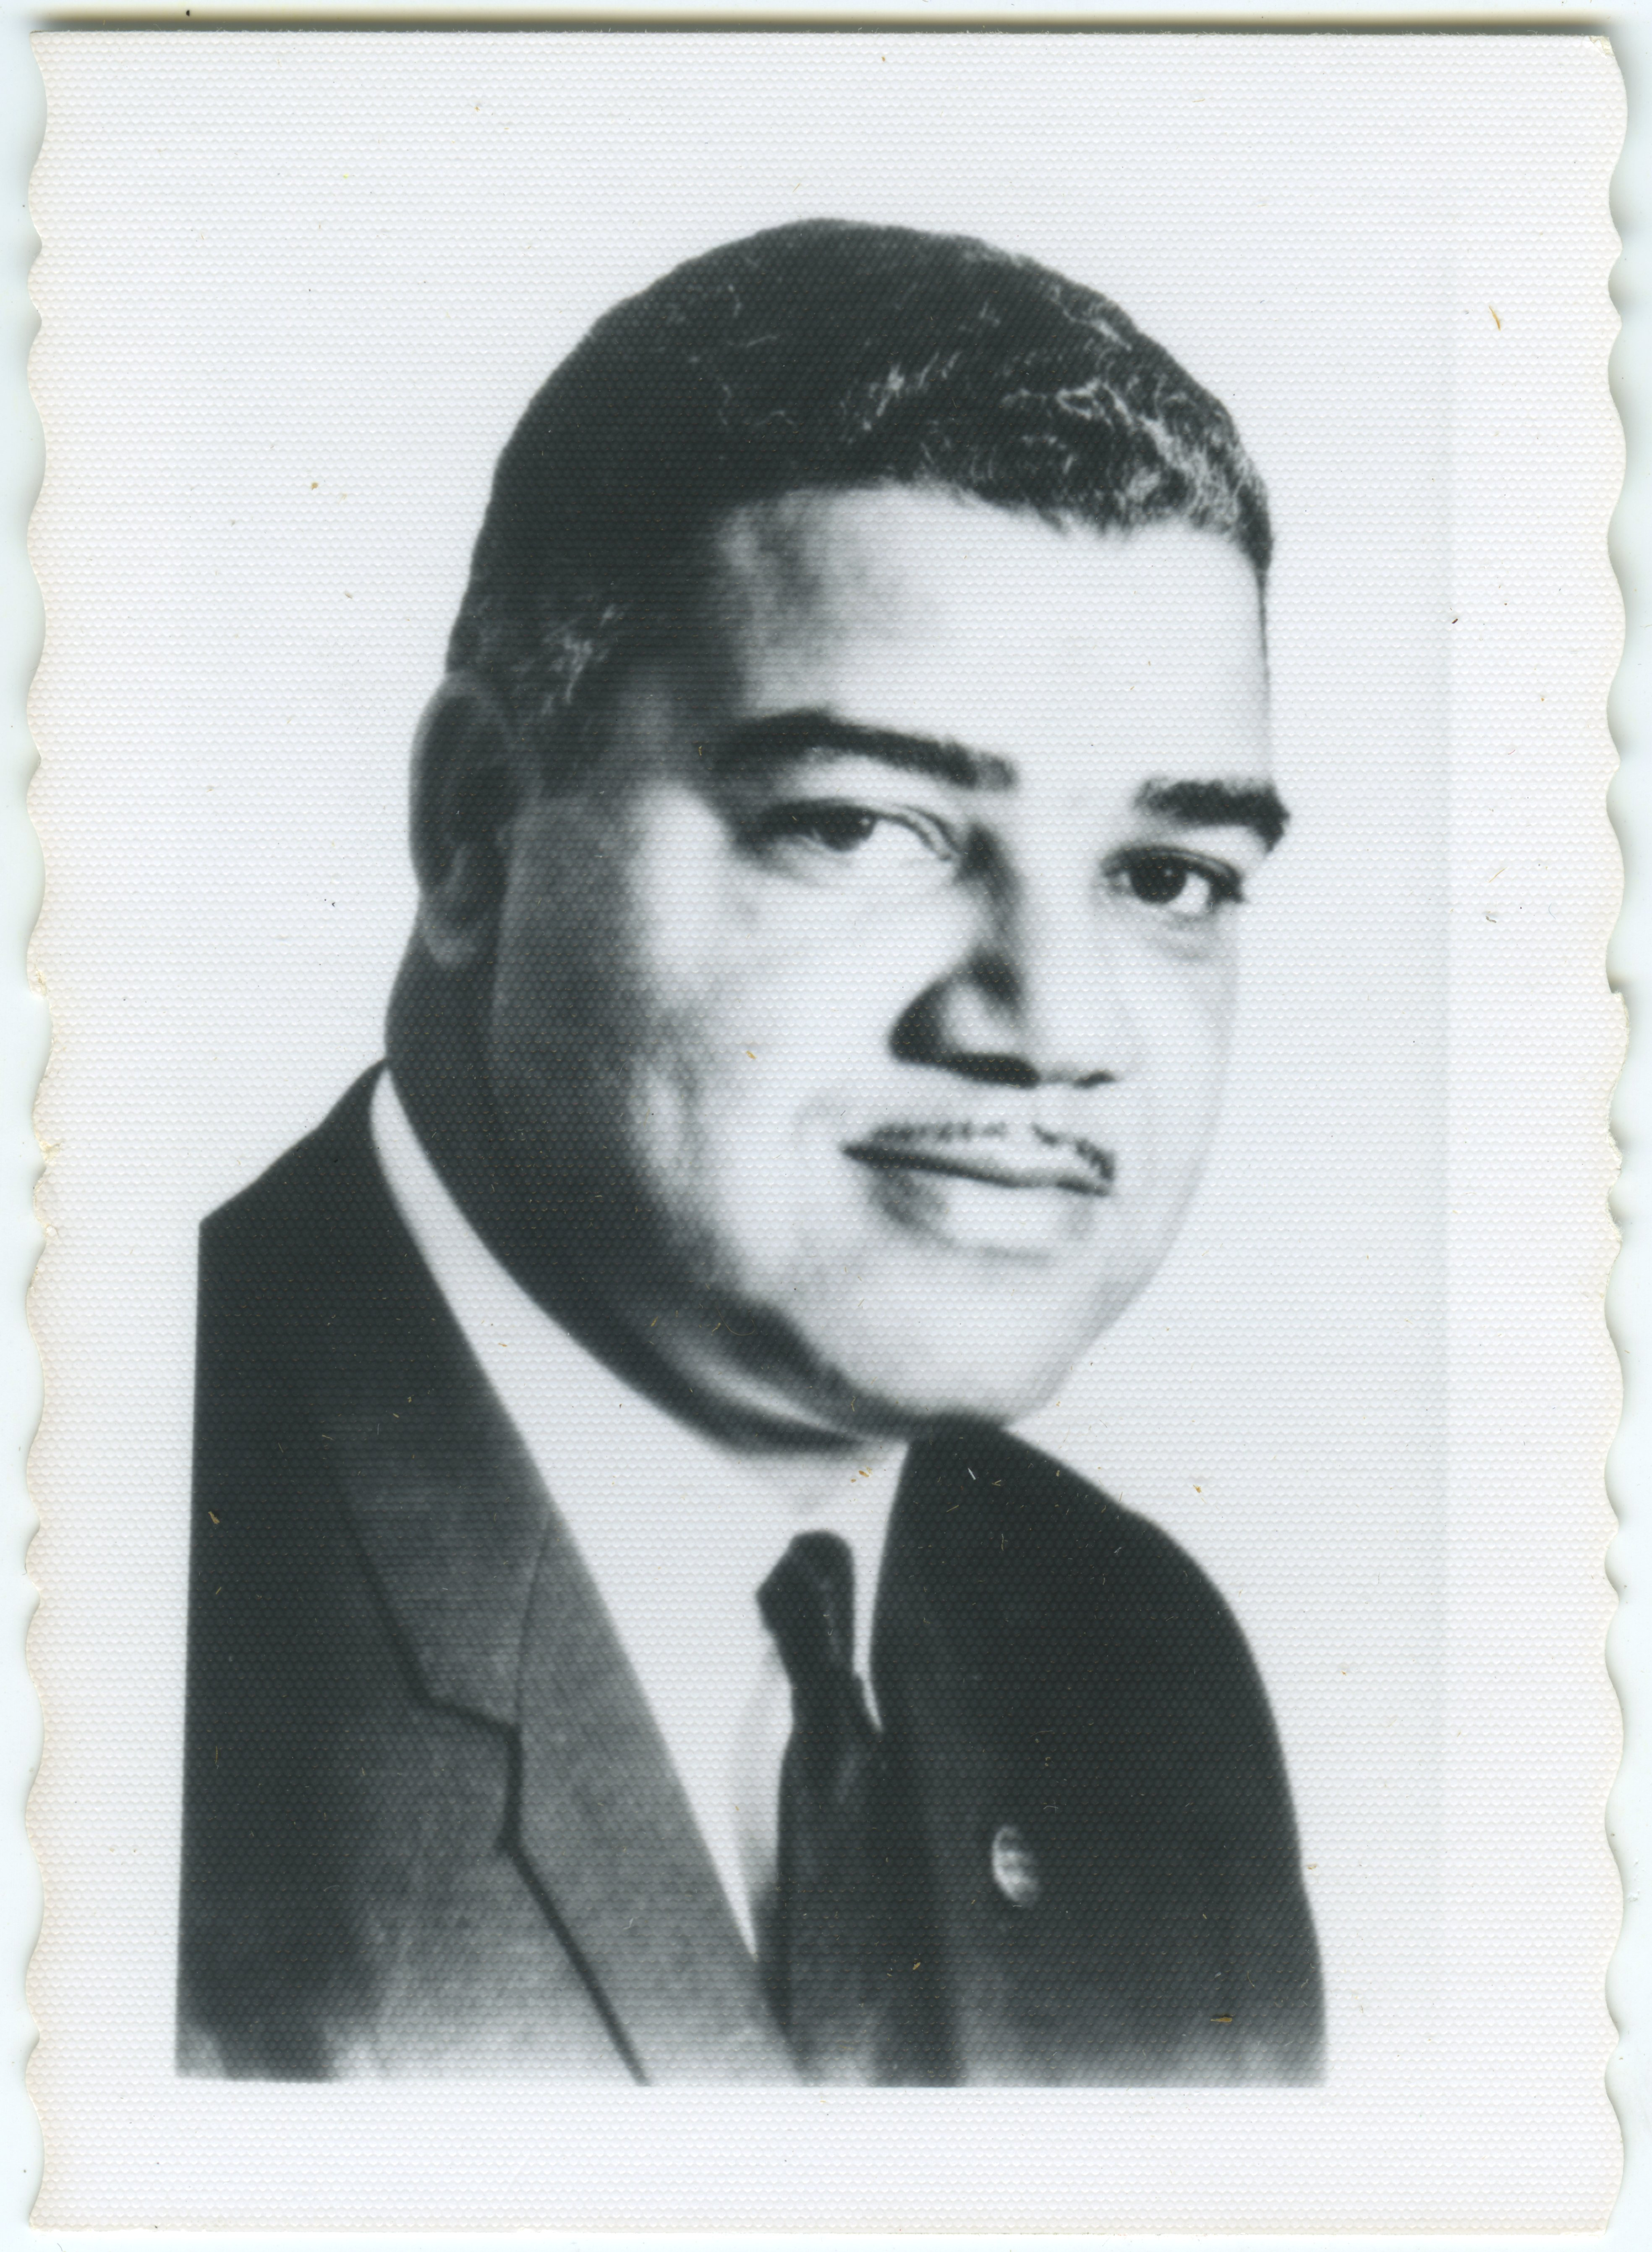 whitney young Social refomer he directed the national urban league from 1961 to 1971 during his tenure he turned the organization into one of the leading voices for civil rights.